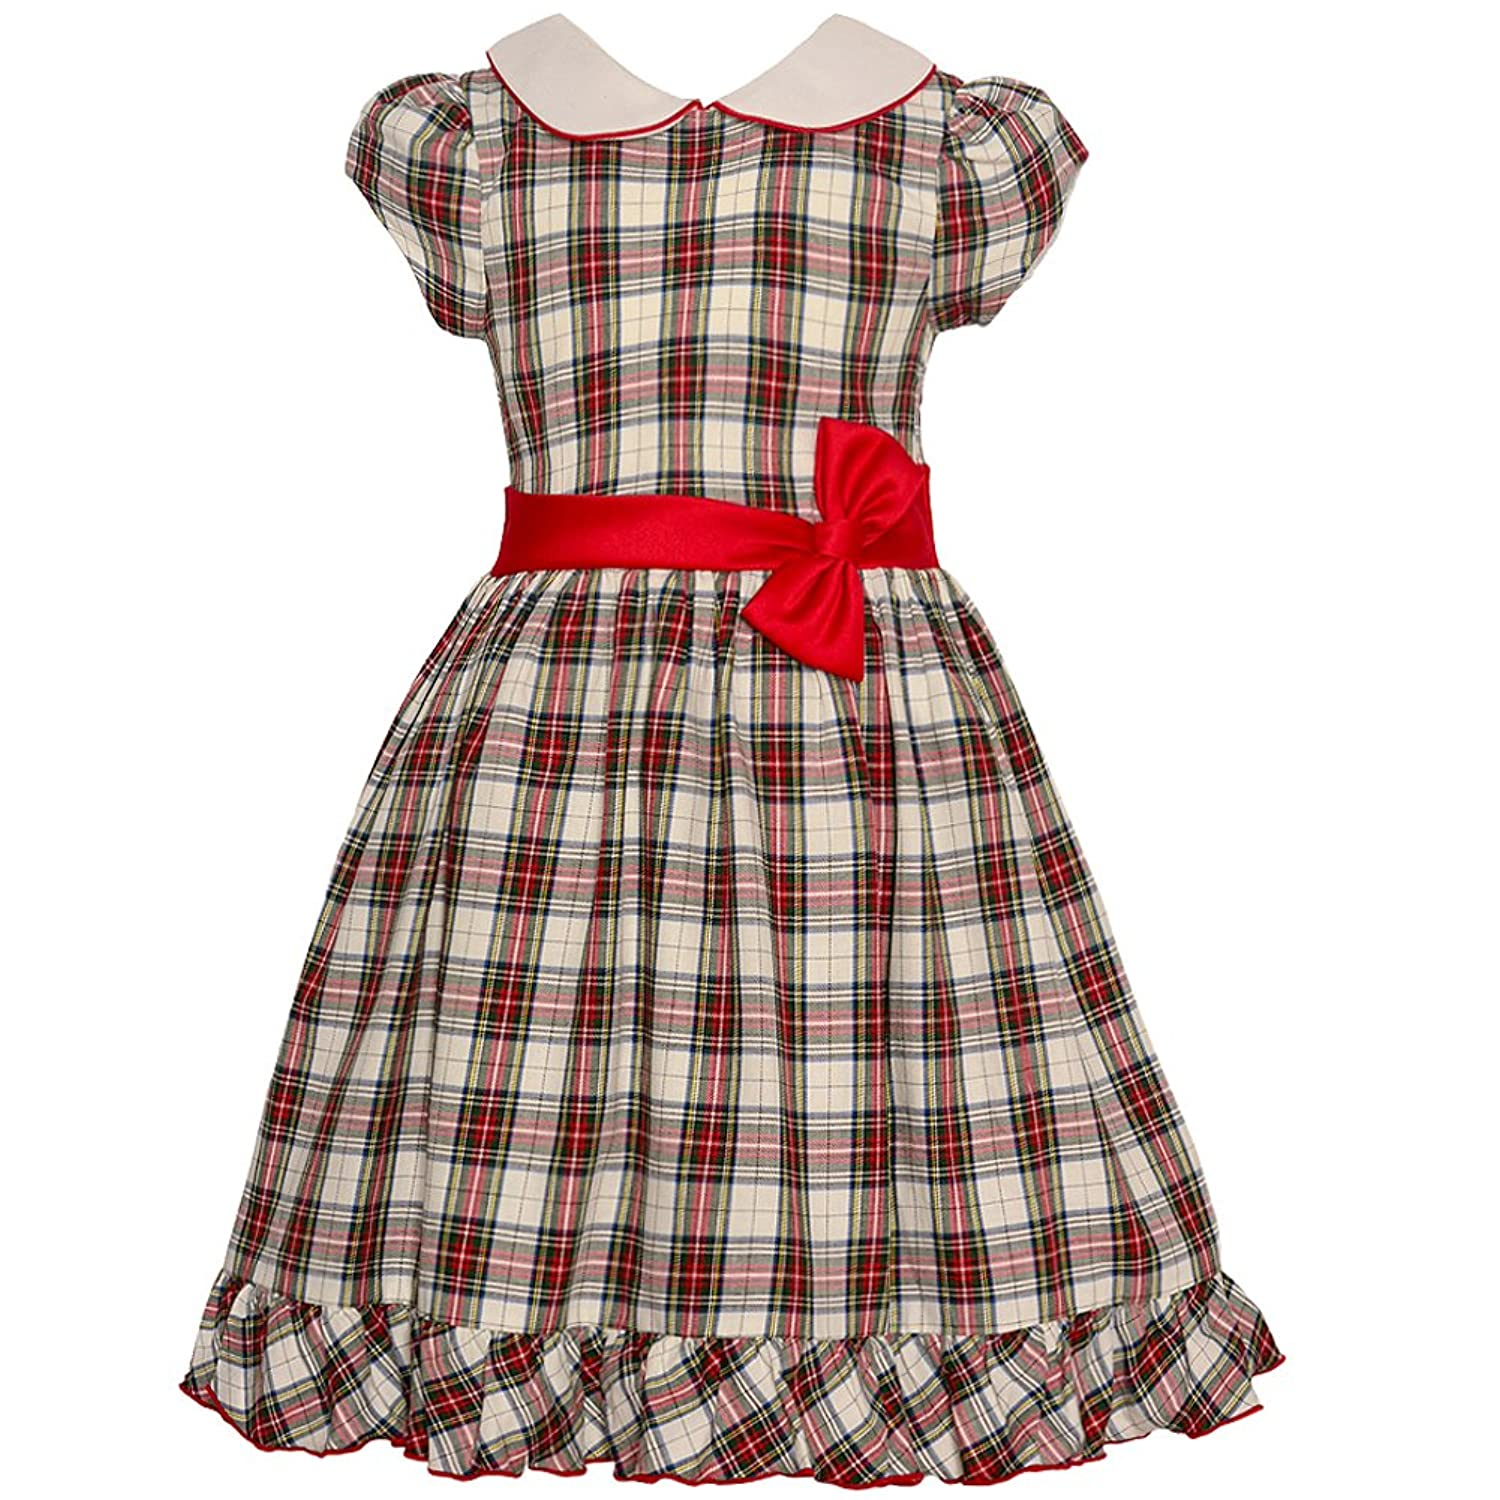 3f1837c750b5f Kids 1950s Clothing & Costumes: Girls, Boys, Toddlers Bonnie Jean Girls  Collared Cotton